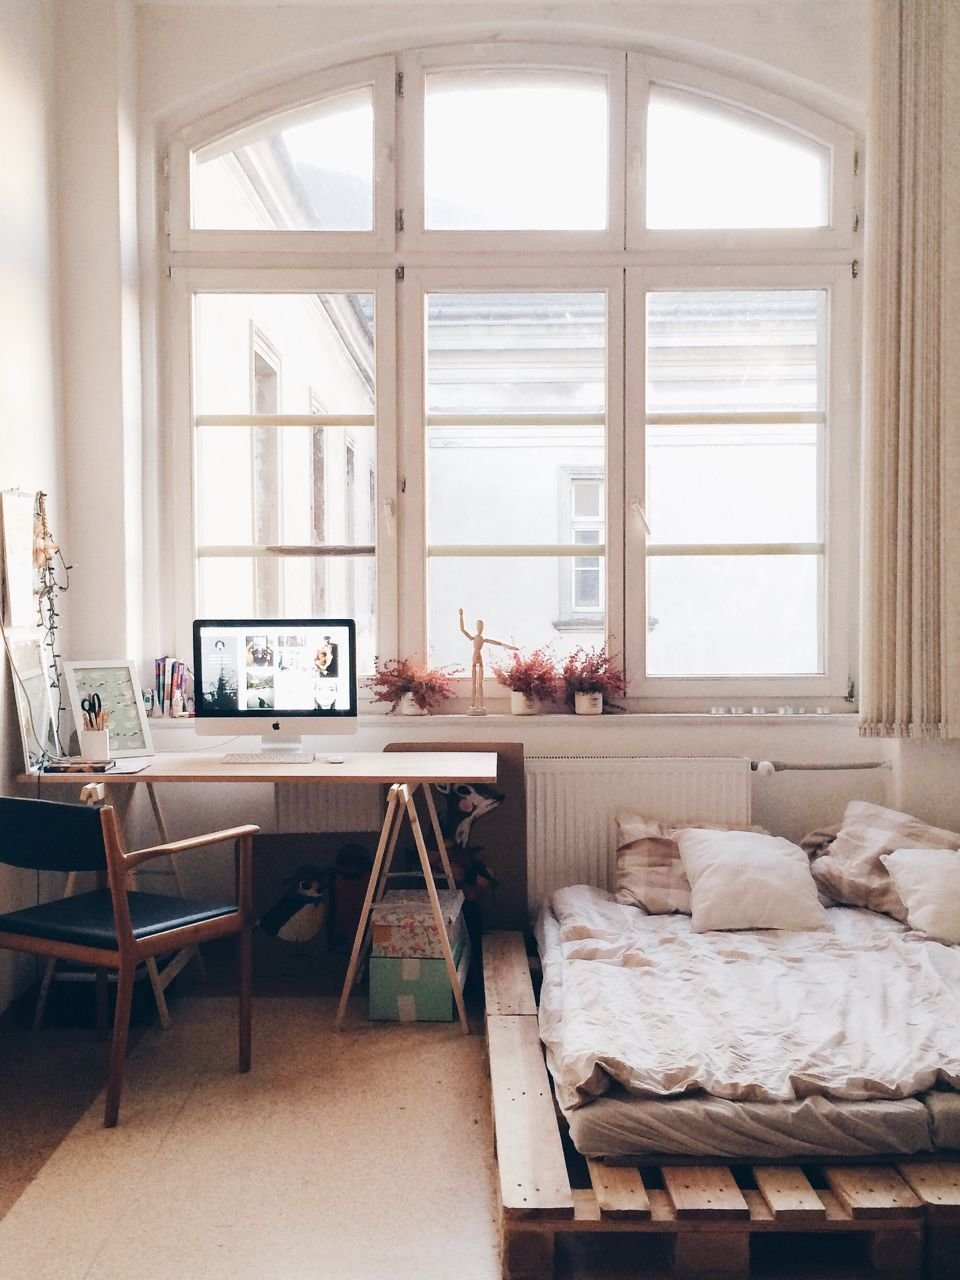 Best Big Bed Sunny Kitchen Plants Books Water In 2019 With Pictures